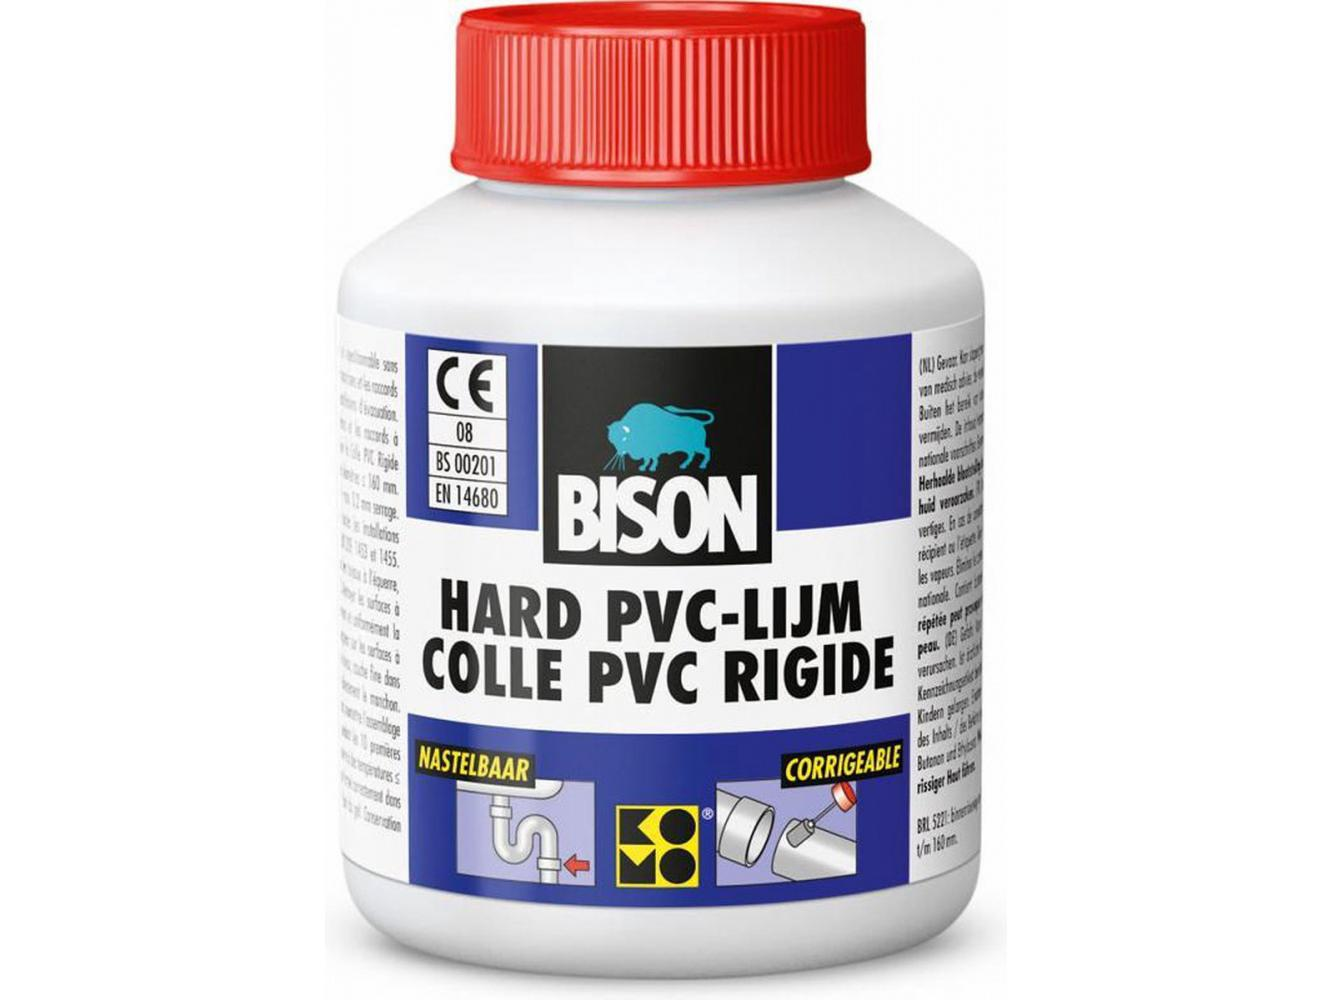 Bison Hard PVC-Lijm